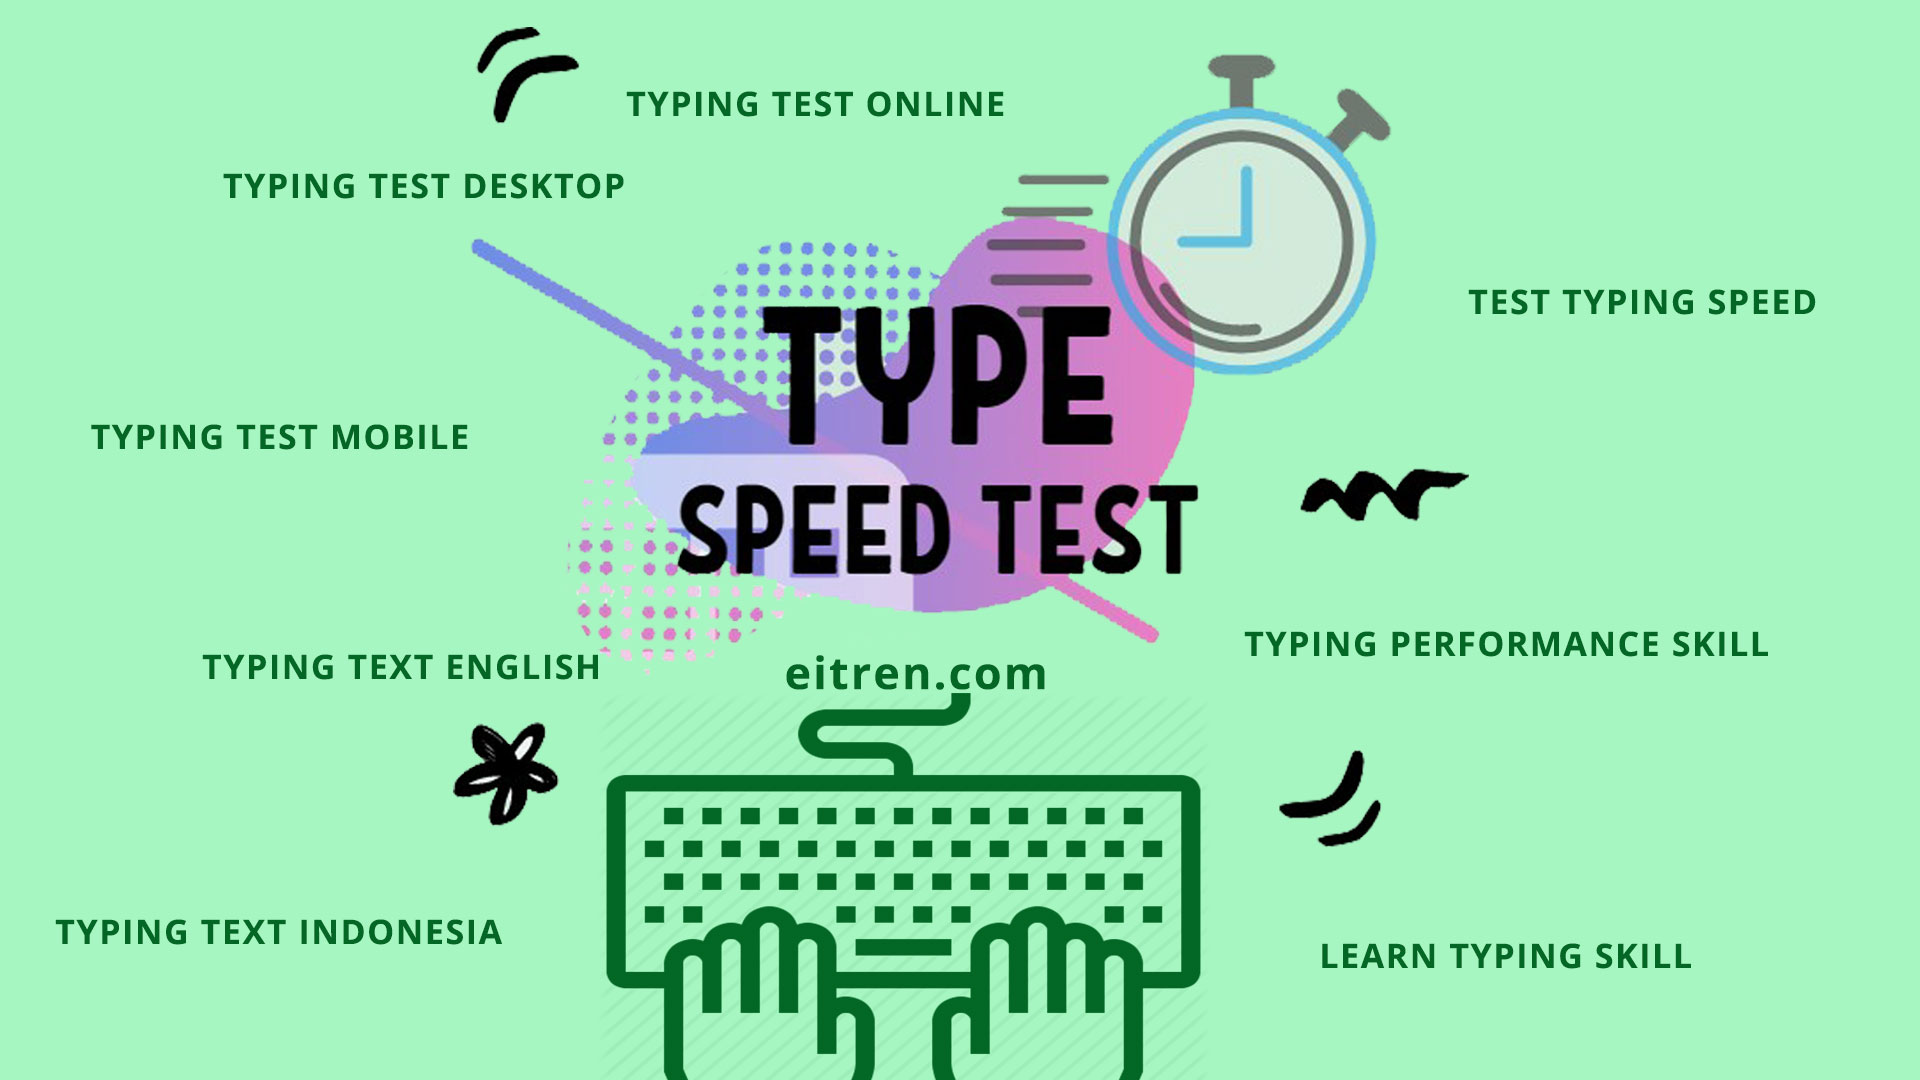 Test Speed Typing Online Englsih Indonesia